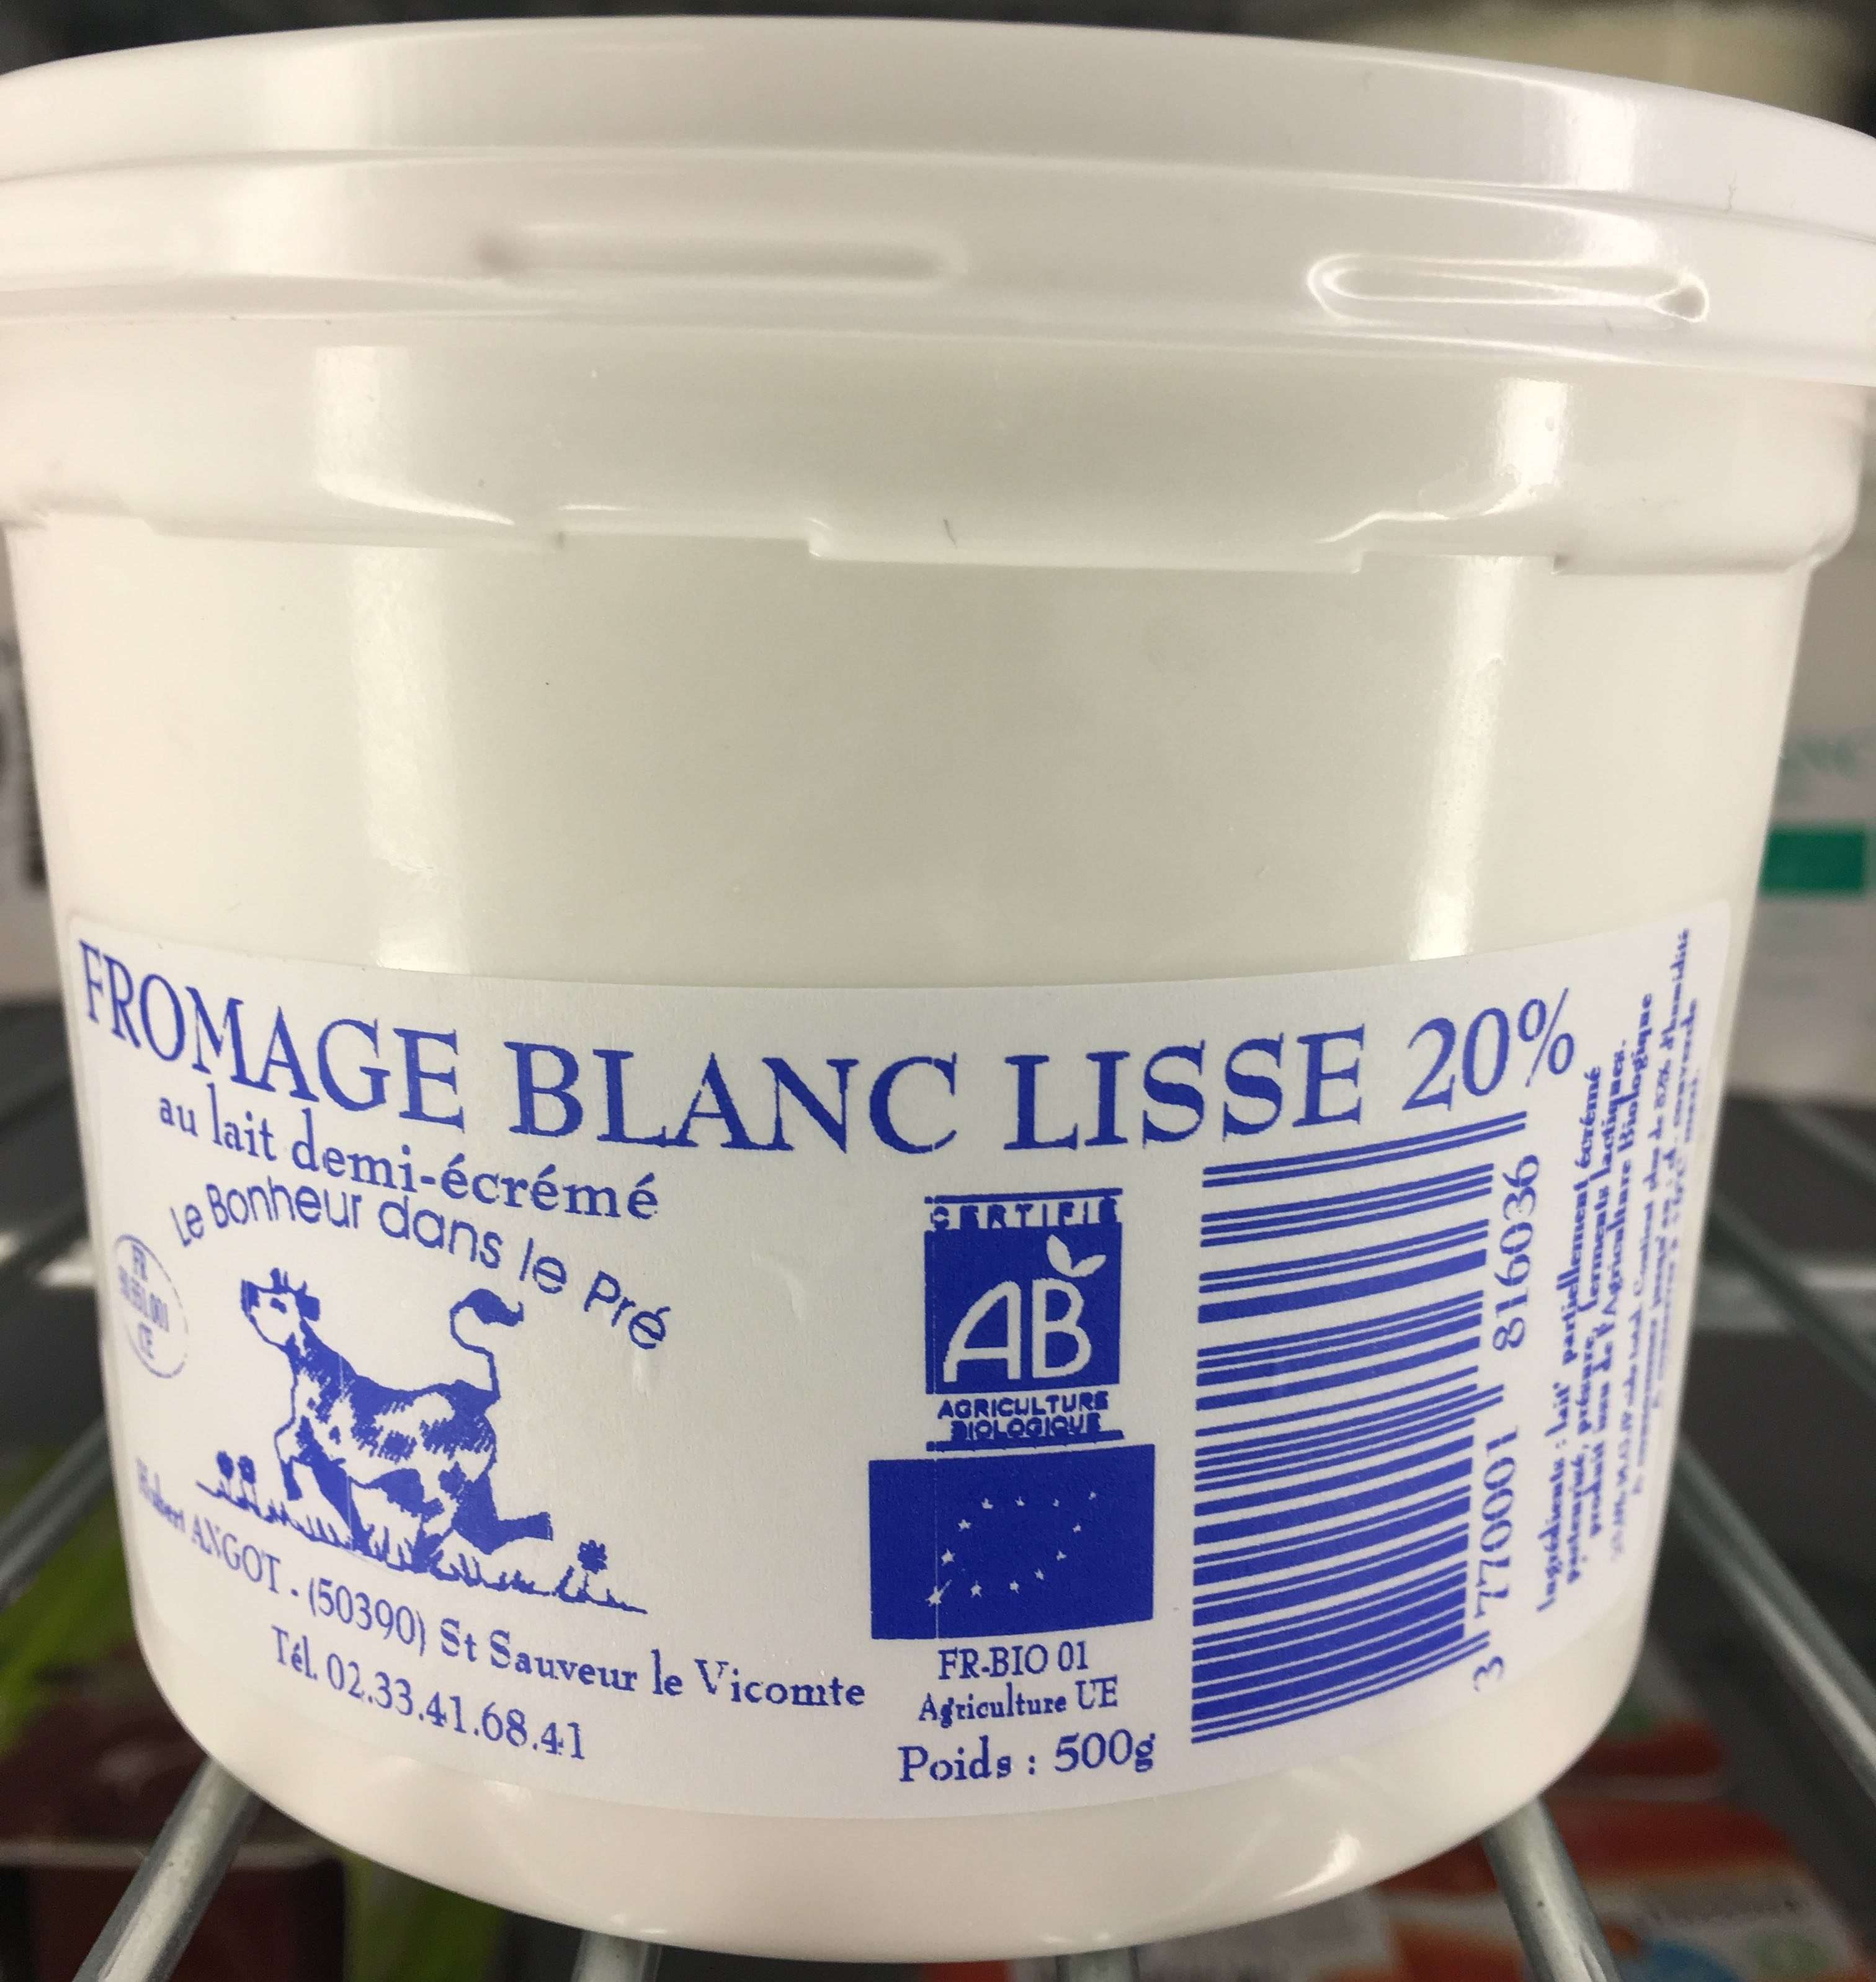 Fromage blanc lisse 20 % - Product - fr